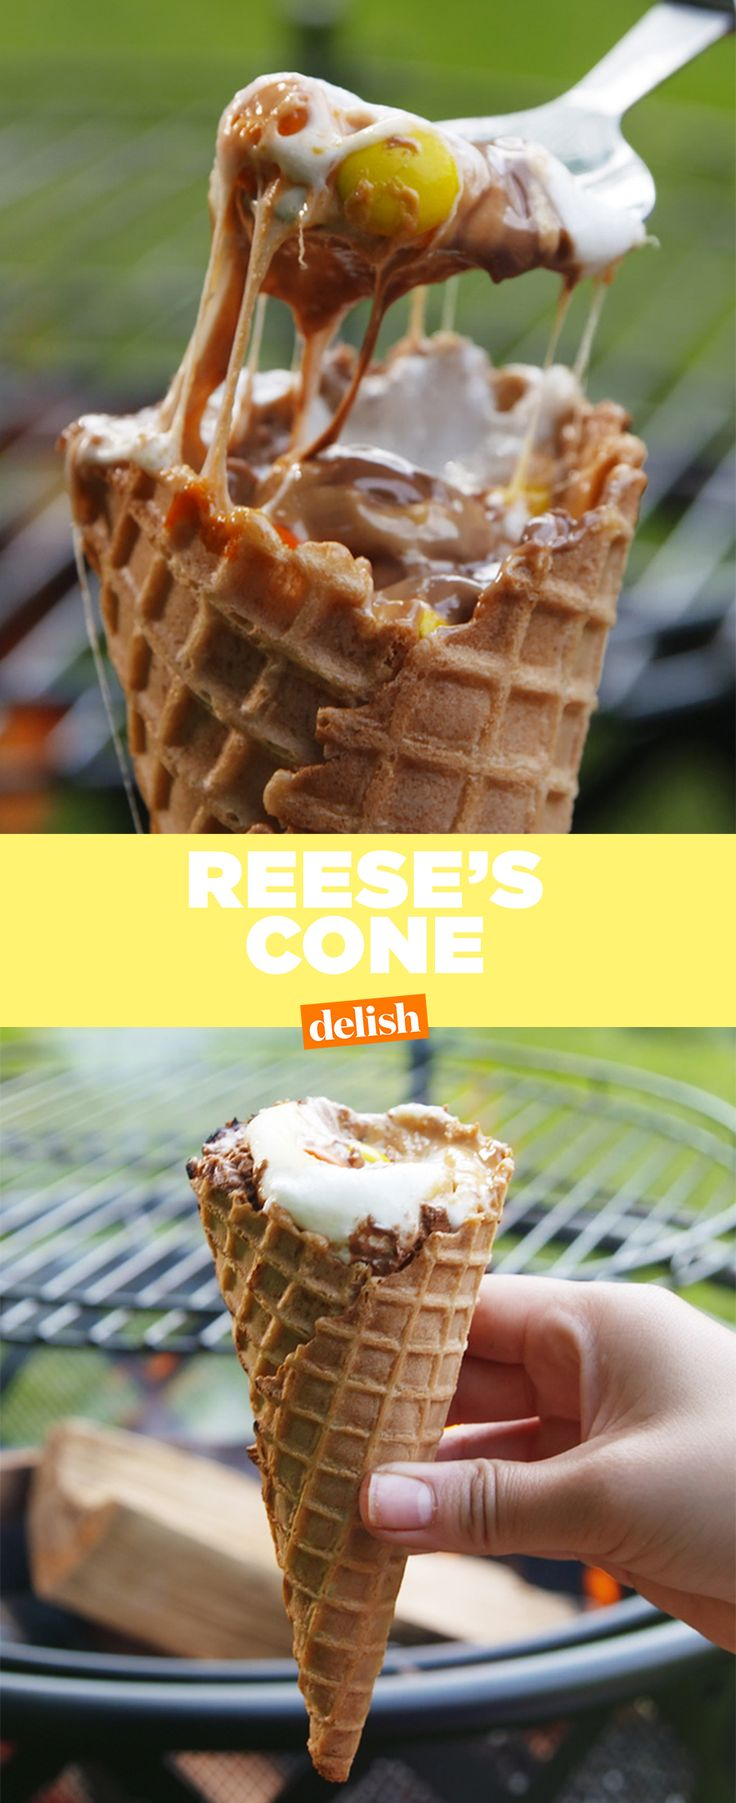 Who knew you could do this with an ice cream cone?! Get the recipe from Delish.com.